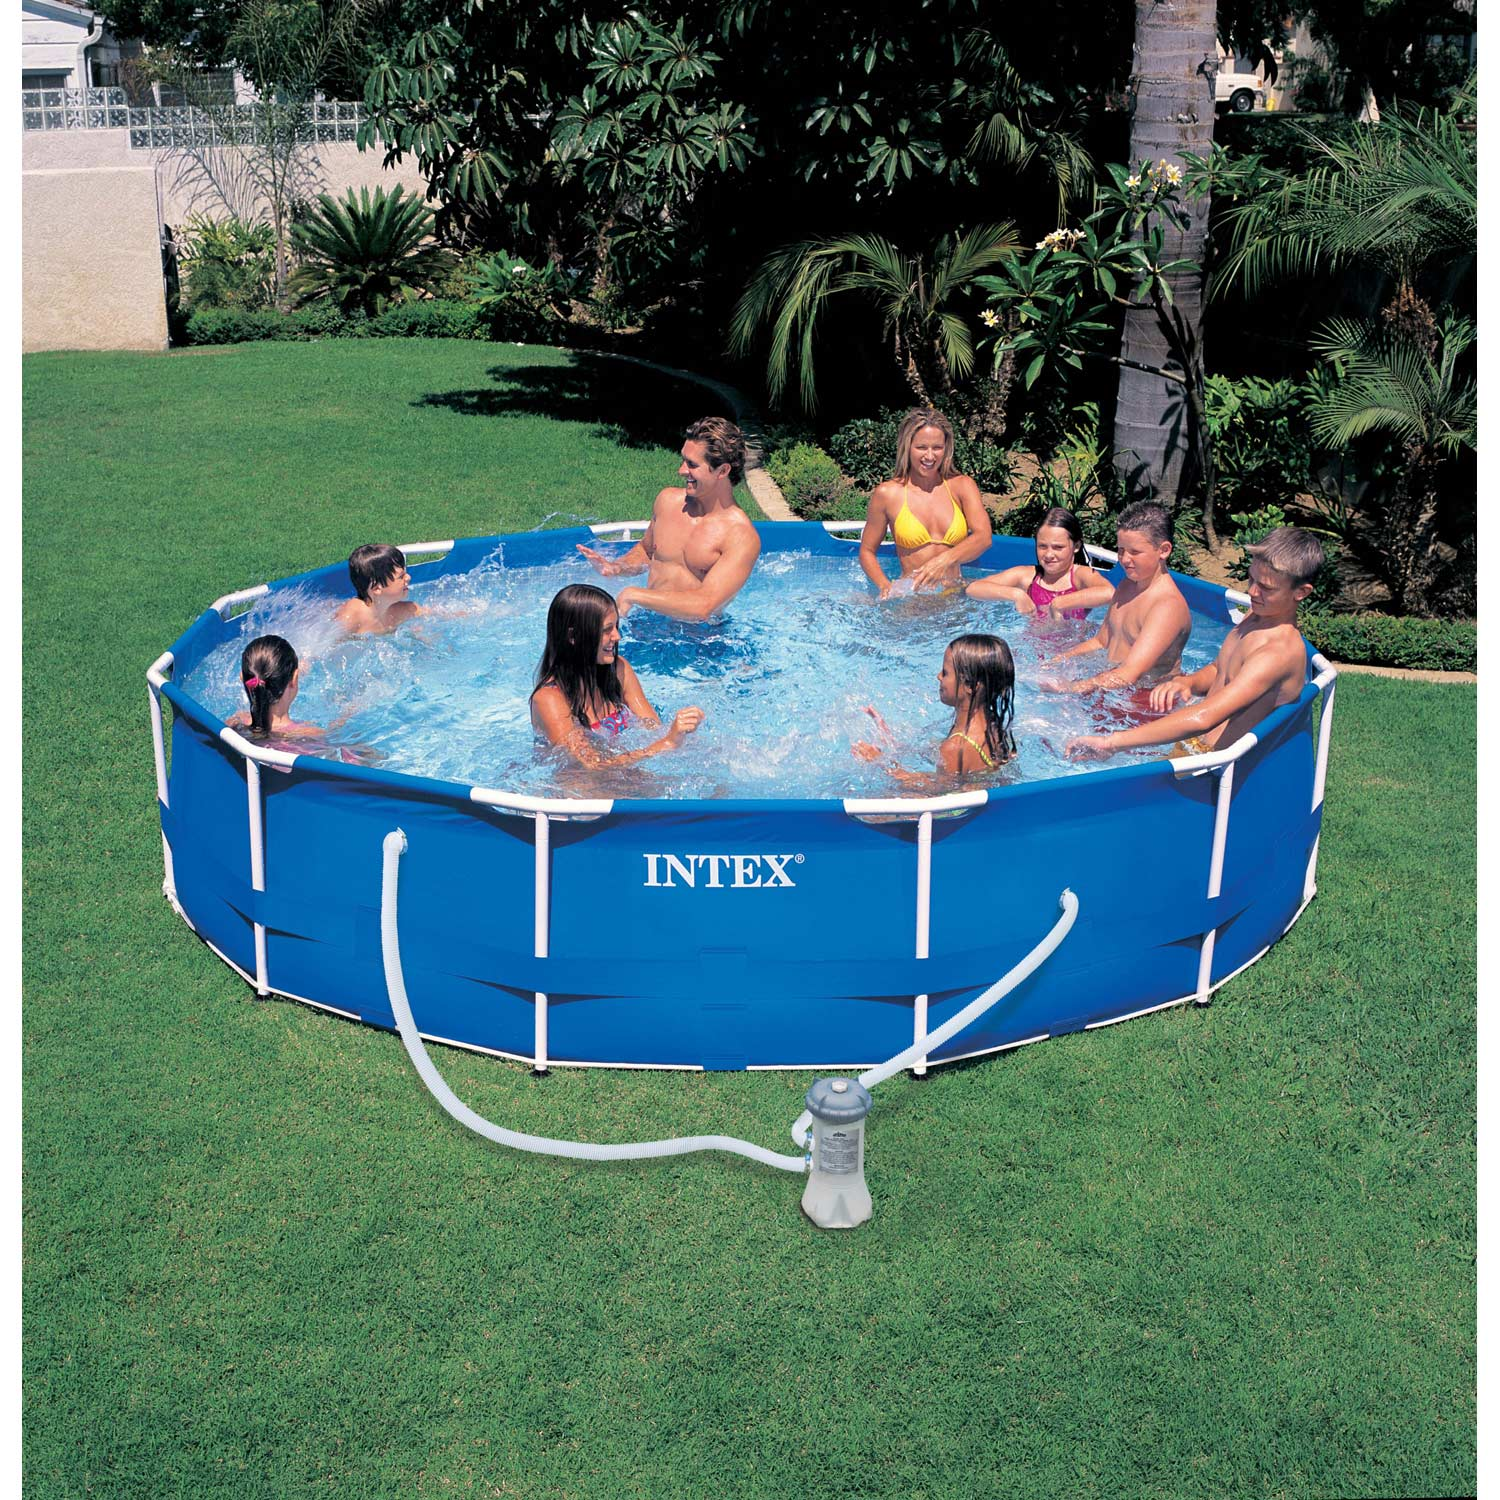 Piscine hors sol autoportante tubulaire metal frame intex for Piscine hors sol autoportee